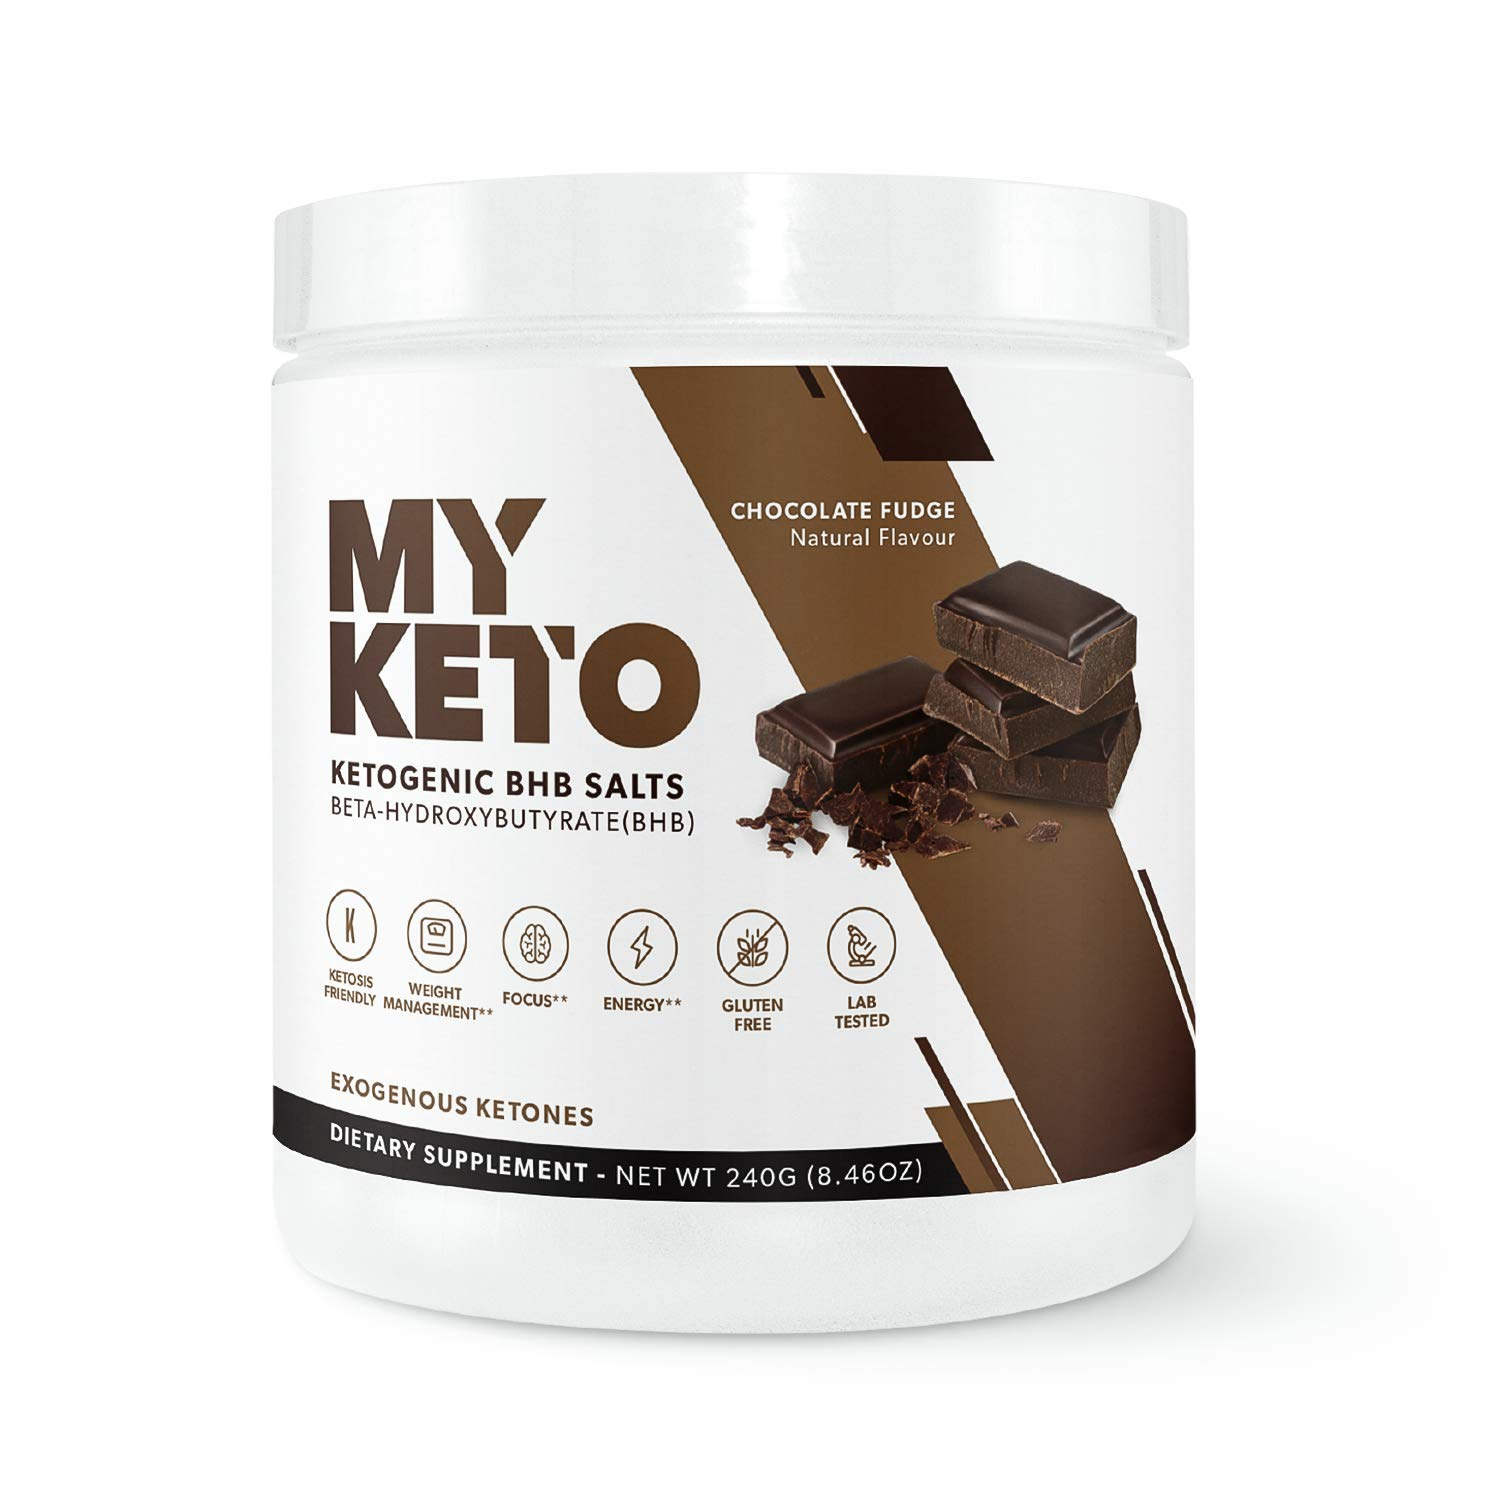 MyKeto BHB Salts - Chocolate Fudge Exogenous Ketone Performance Powder - Formulated for Ketosis, Energy, Focus, and Fat Burn - Ketogenic Diet Supplement with Beta-Hydroxybutyrate (Chocolate Fudge)